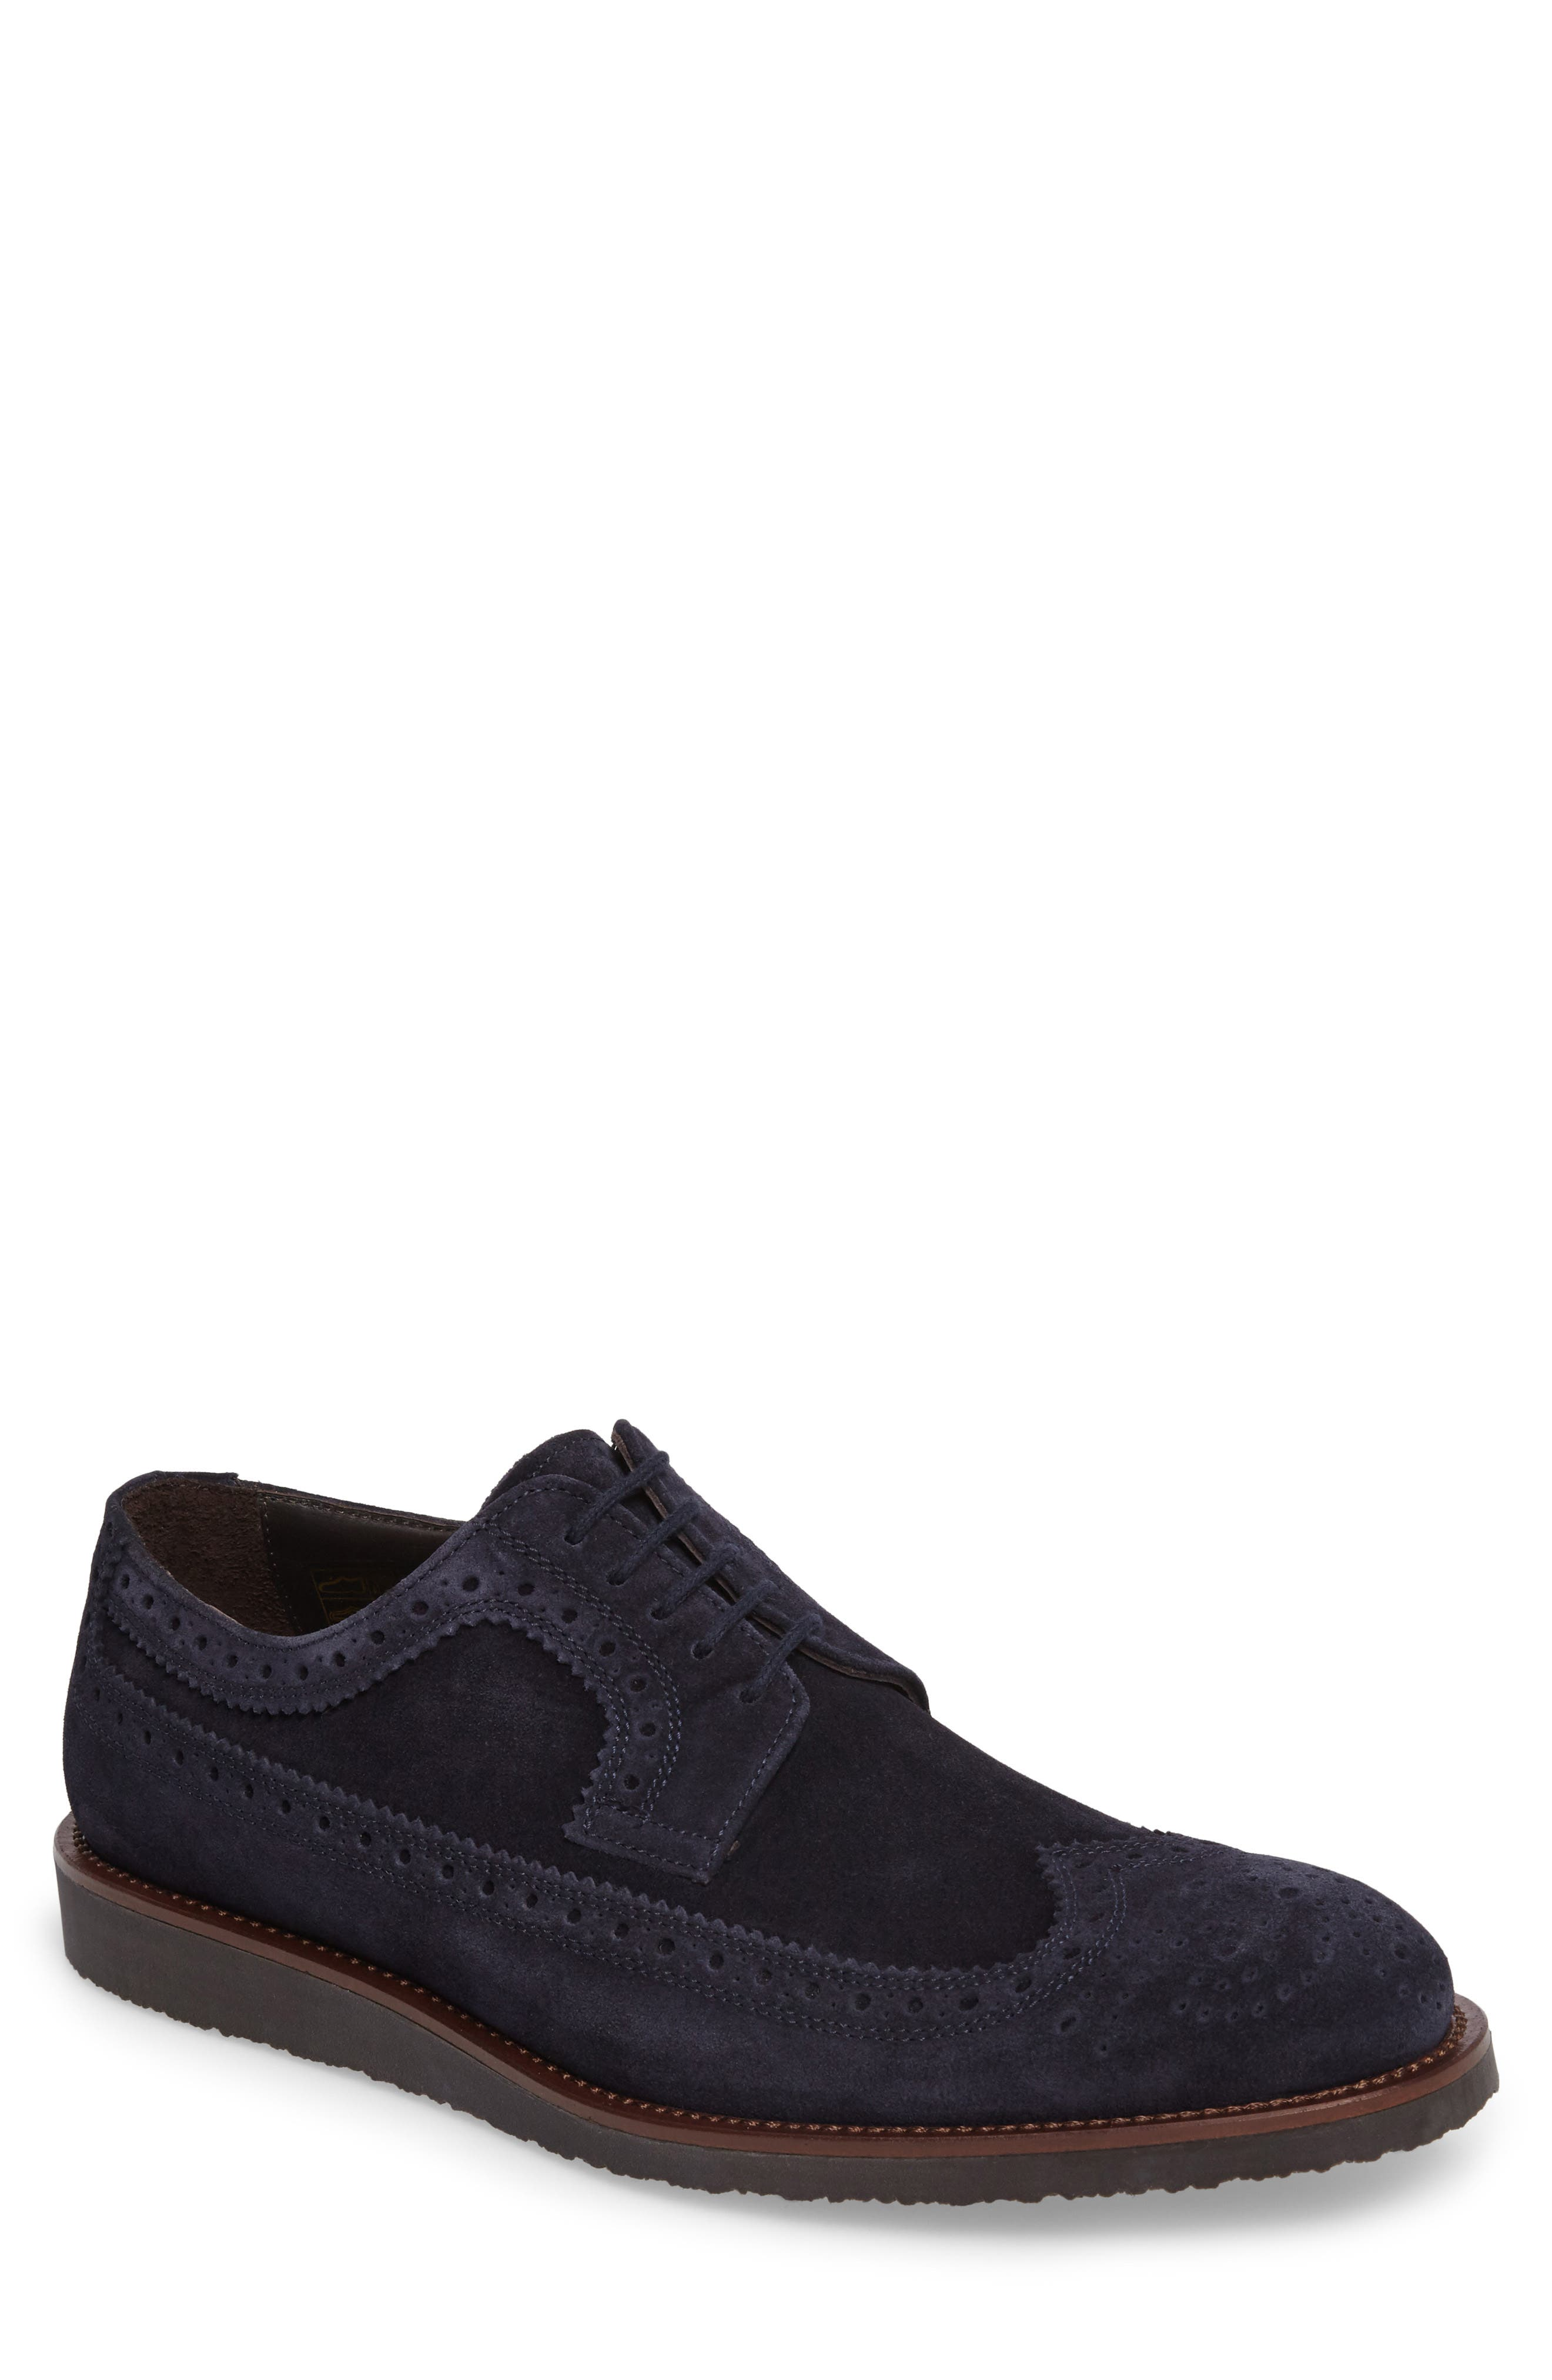 Hillsdale Longwing Derby,                         Main,                         color, Blu Navy